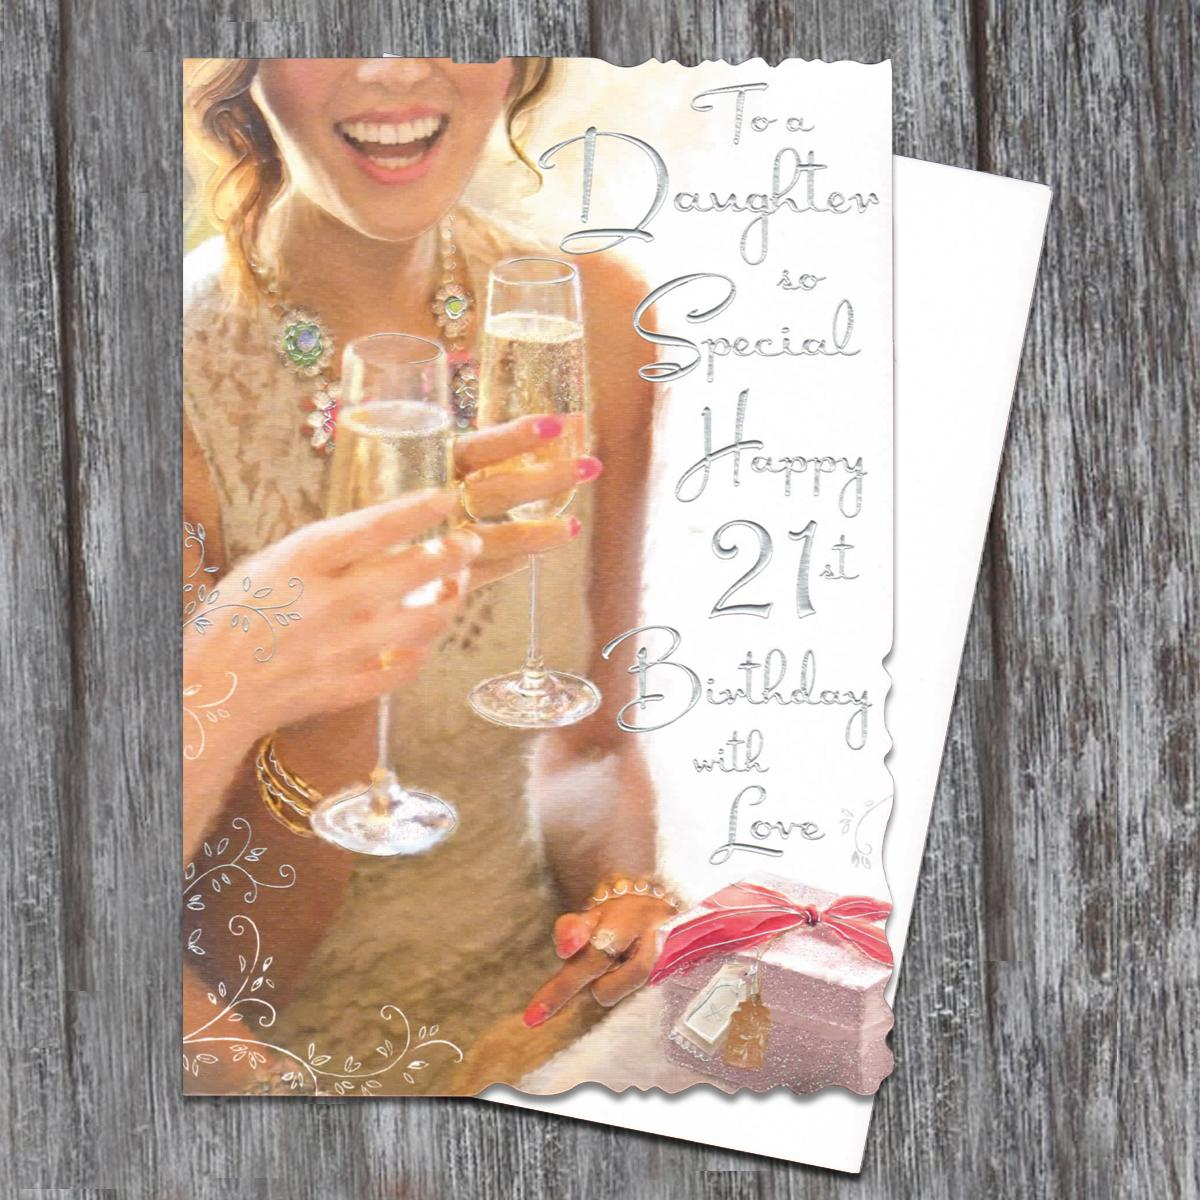 Daughter Age 21 Birthday Card Full Image